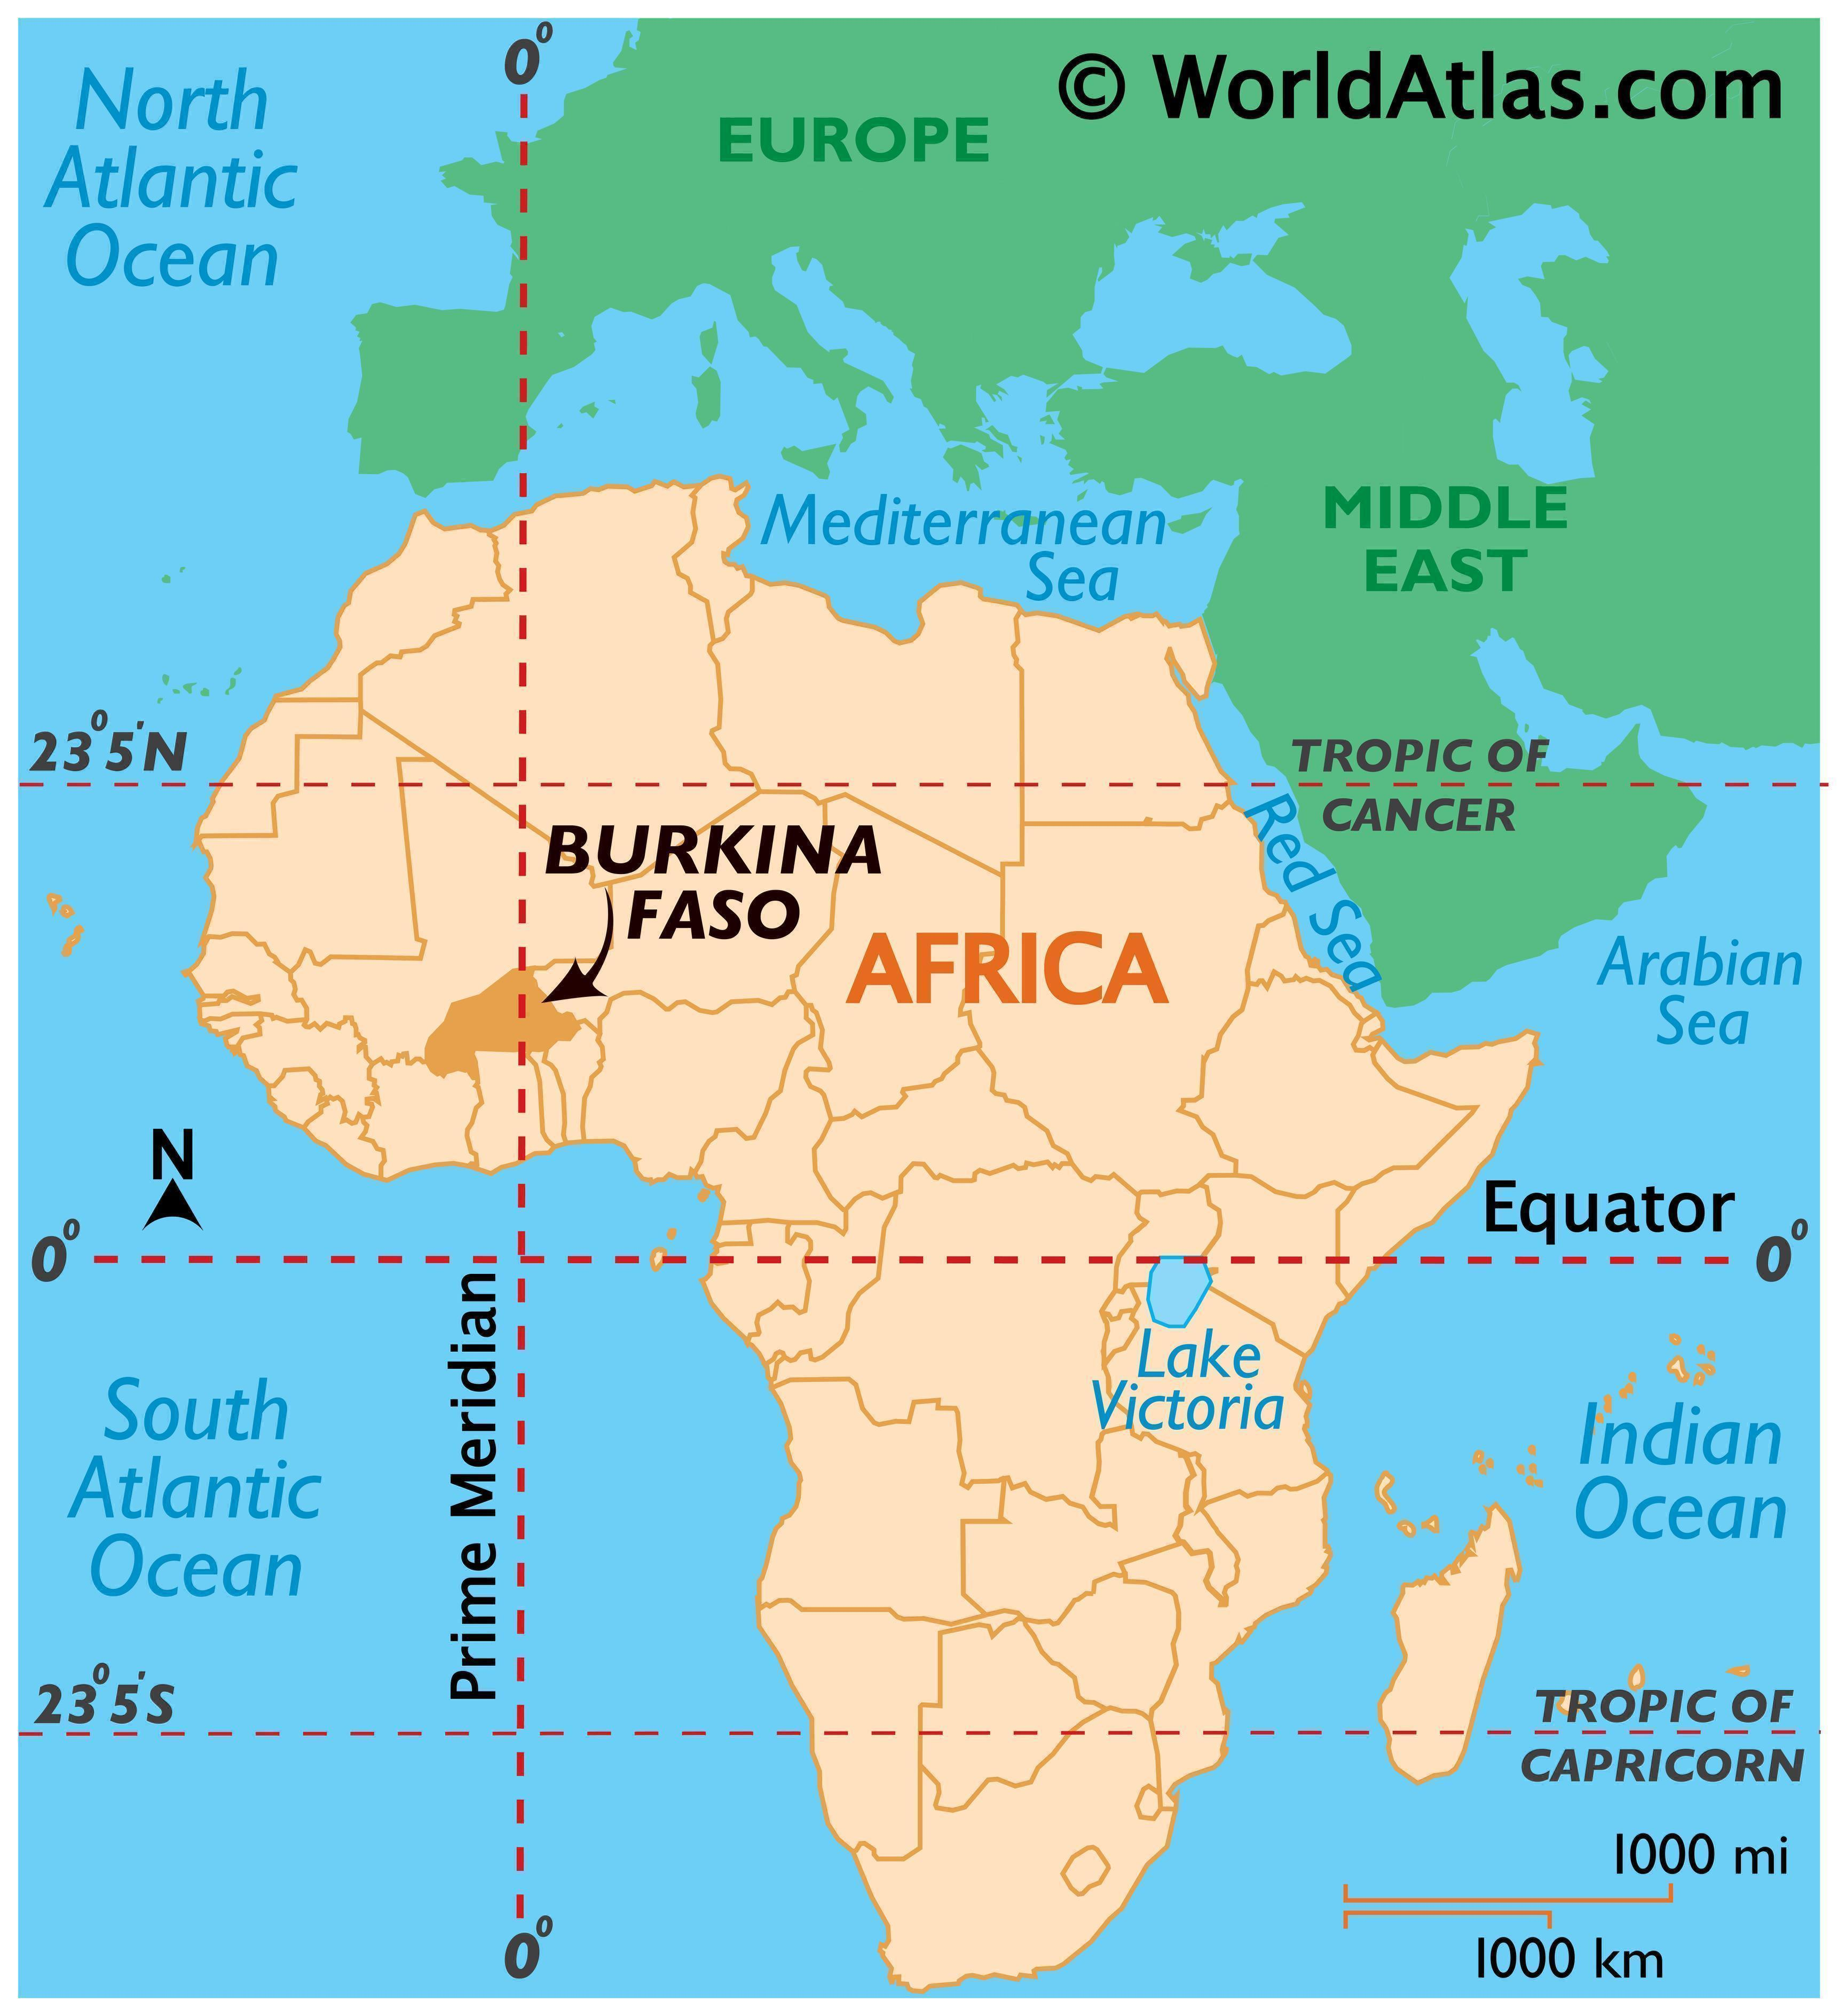 Where is Burkina Faso?